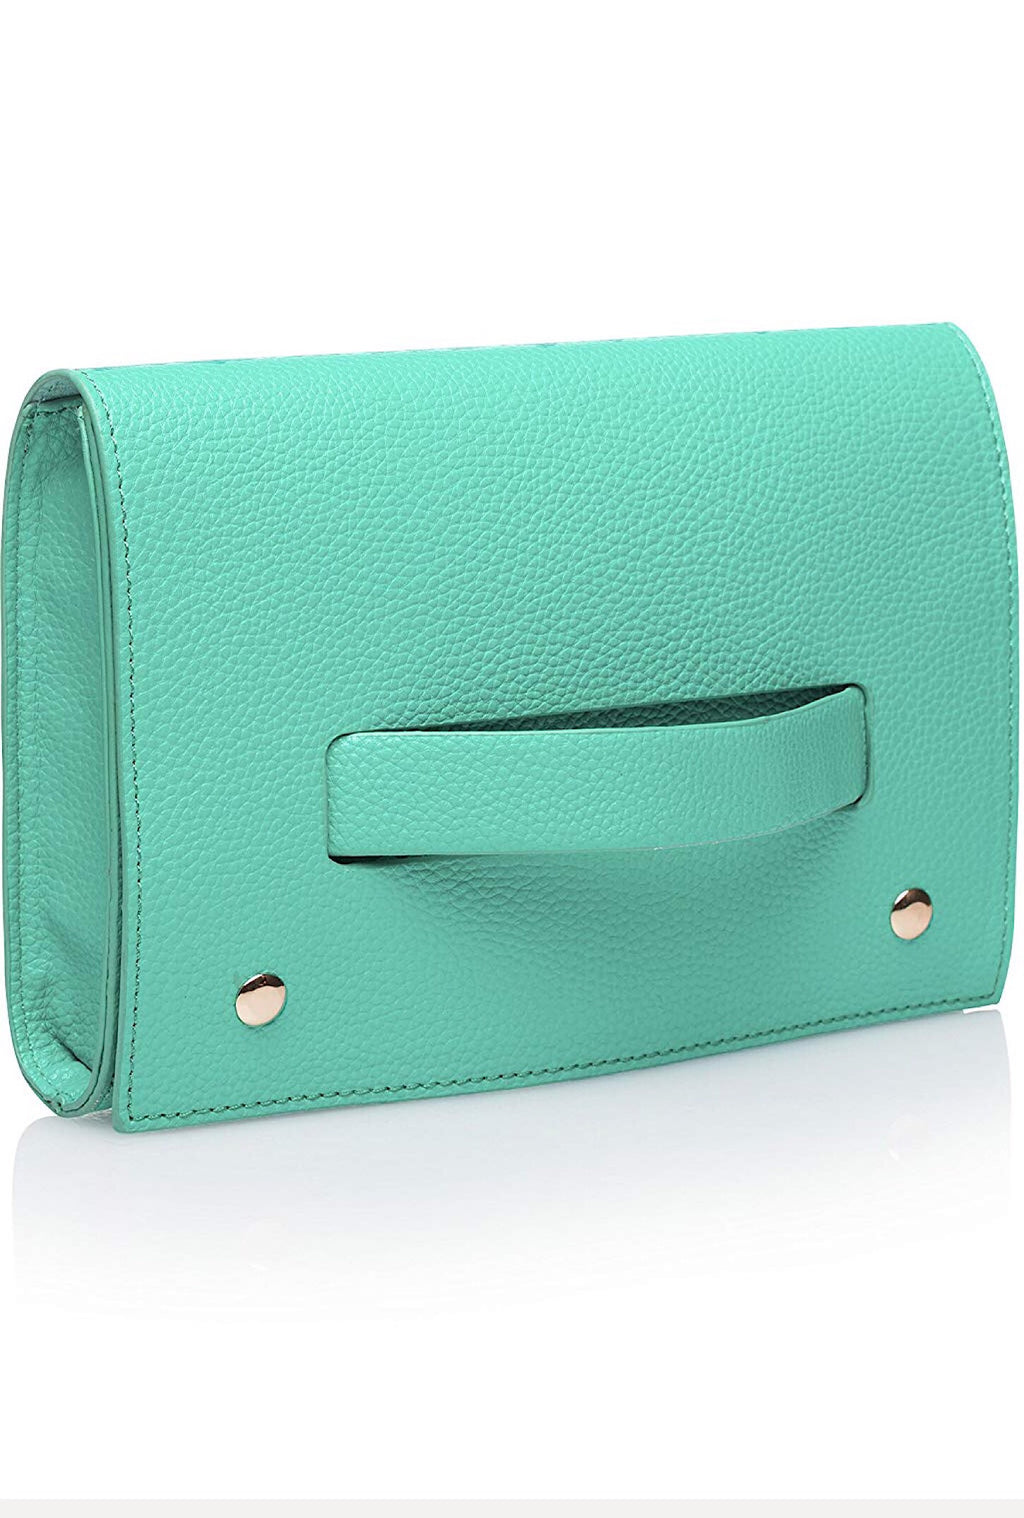 Mint Hand Clutch - Bellamie Boutique